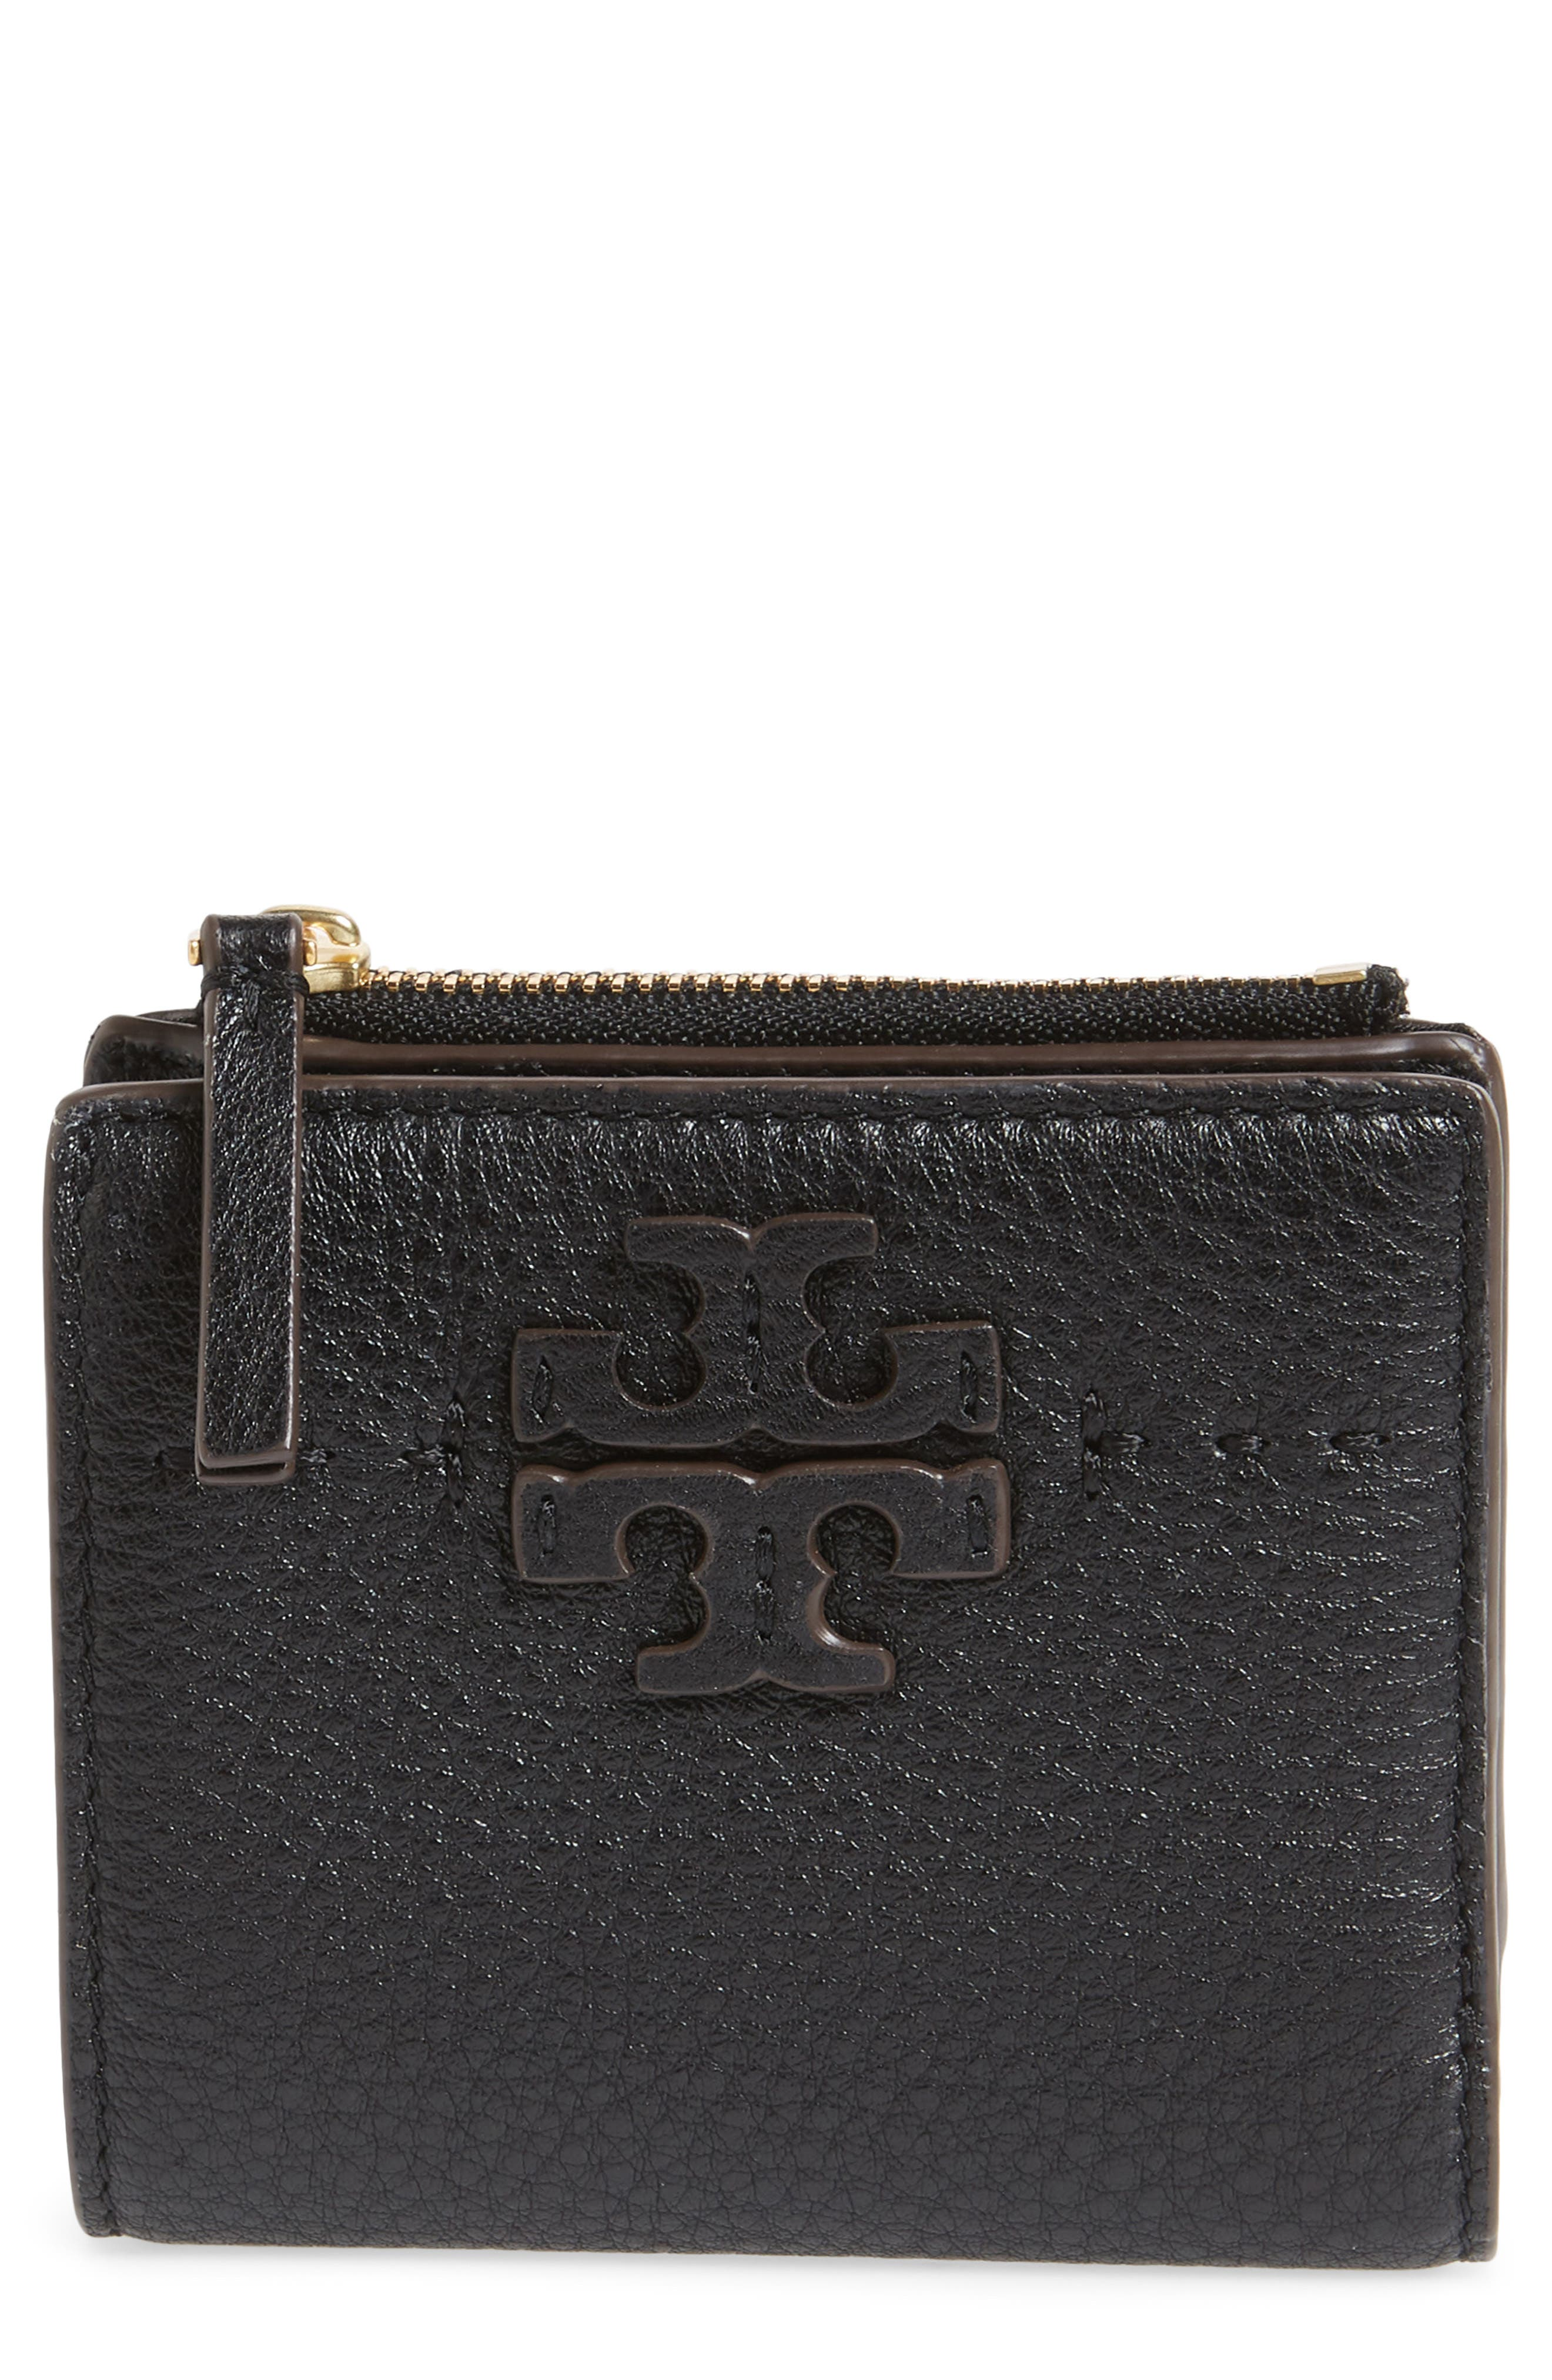 McGraw Leather Bifold Wallet,                         Main,                         color, 001